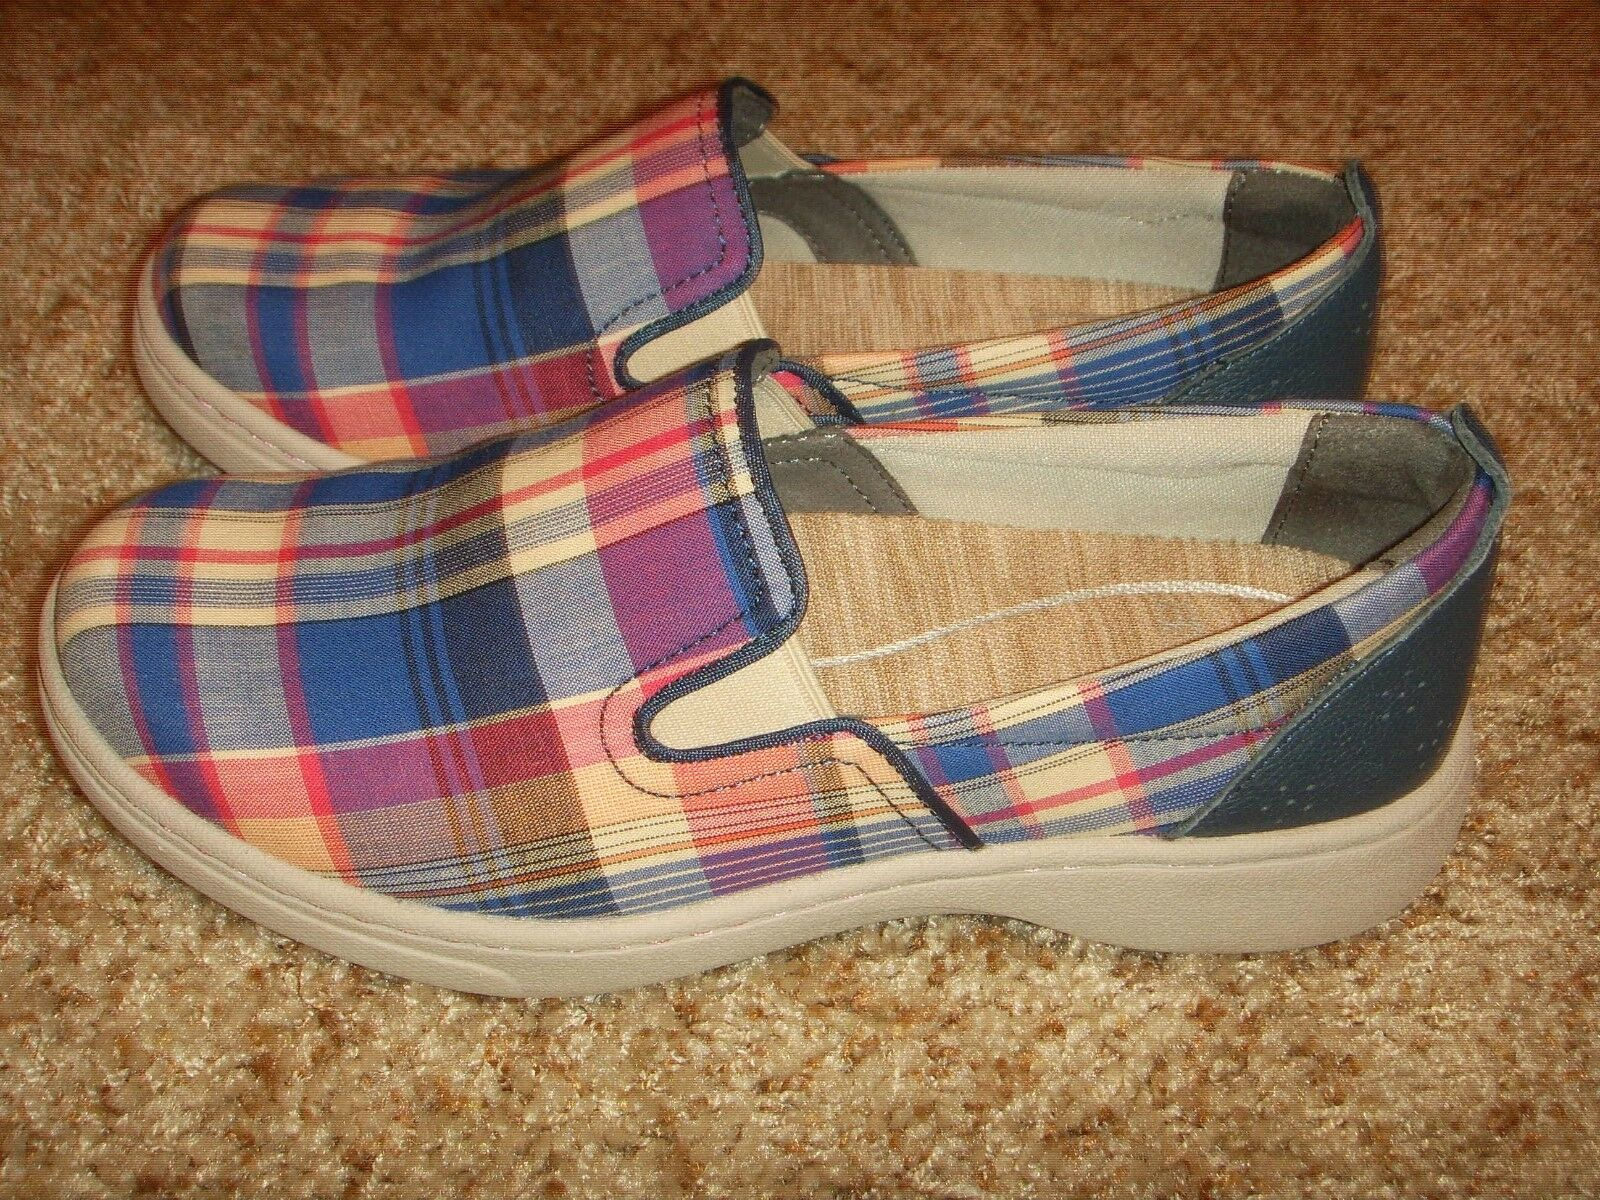 DANSKO Belle Madras Plaid Fabric Loafers Shoes Womens Size 36